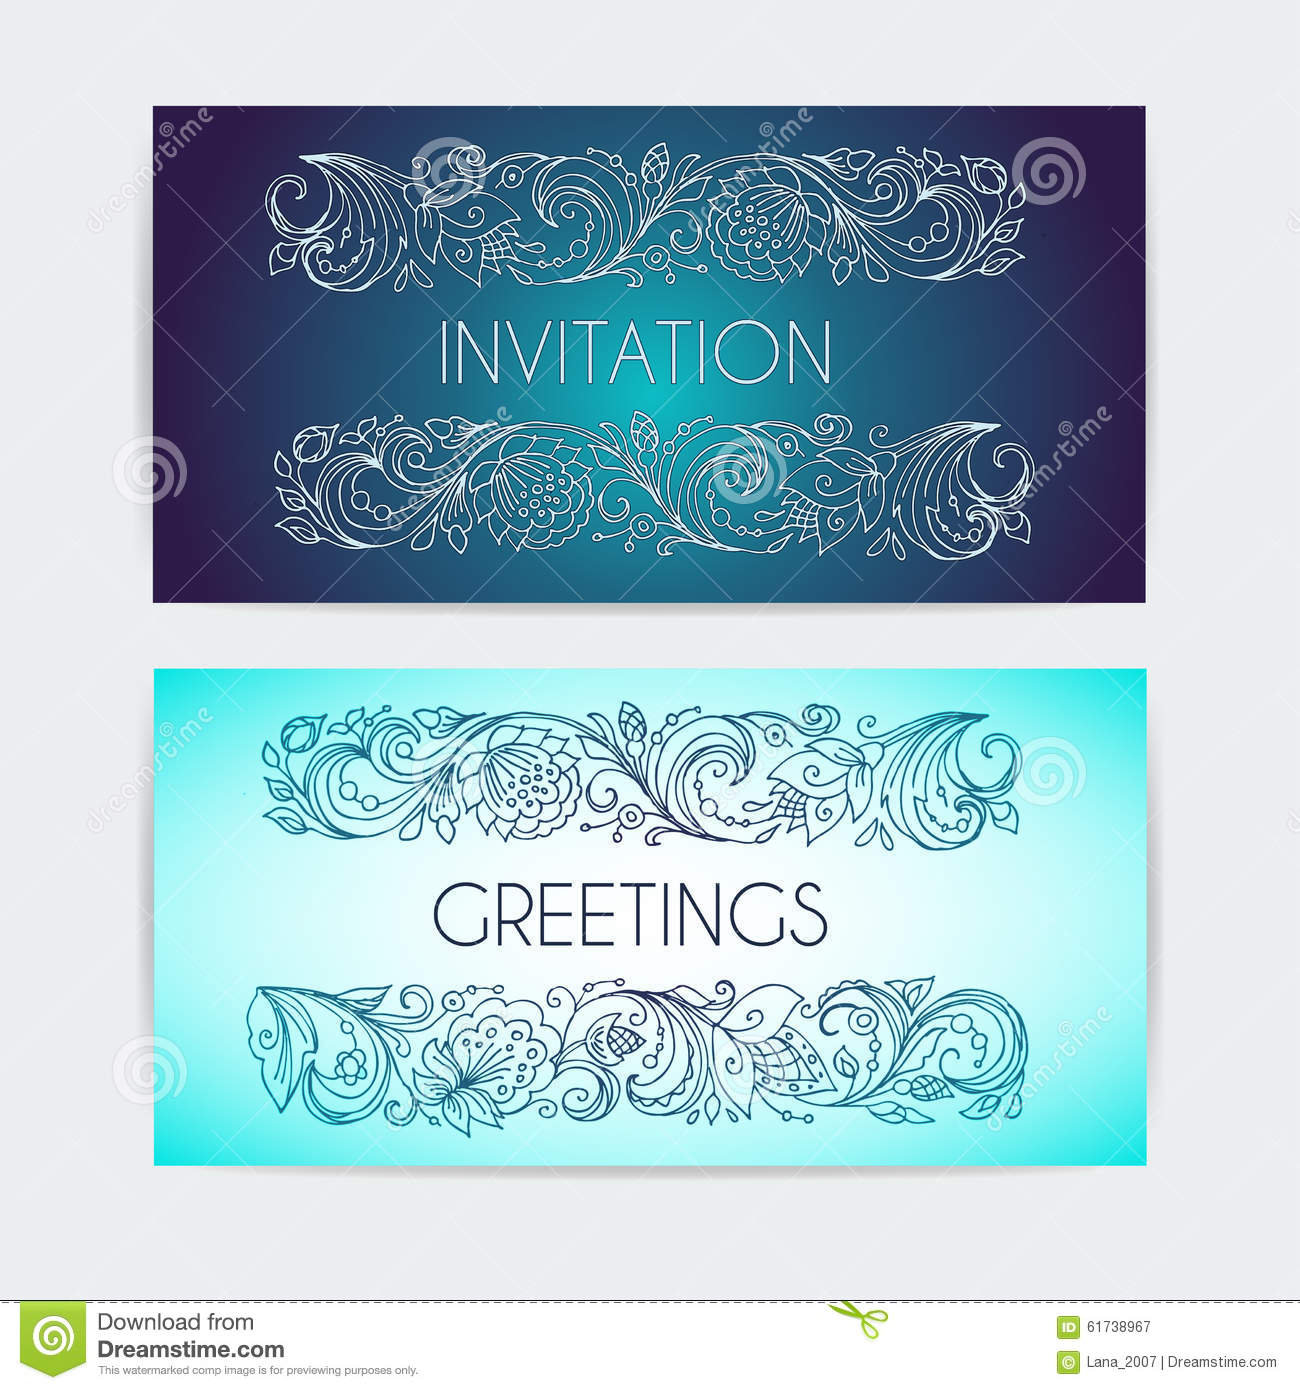 template invitation congratulation vegetable patterned border in